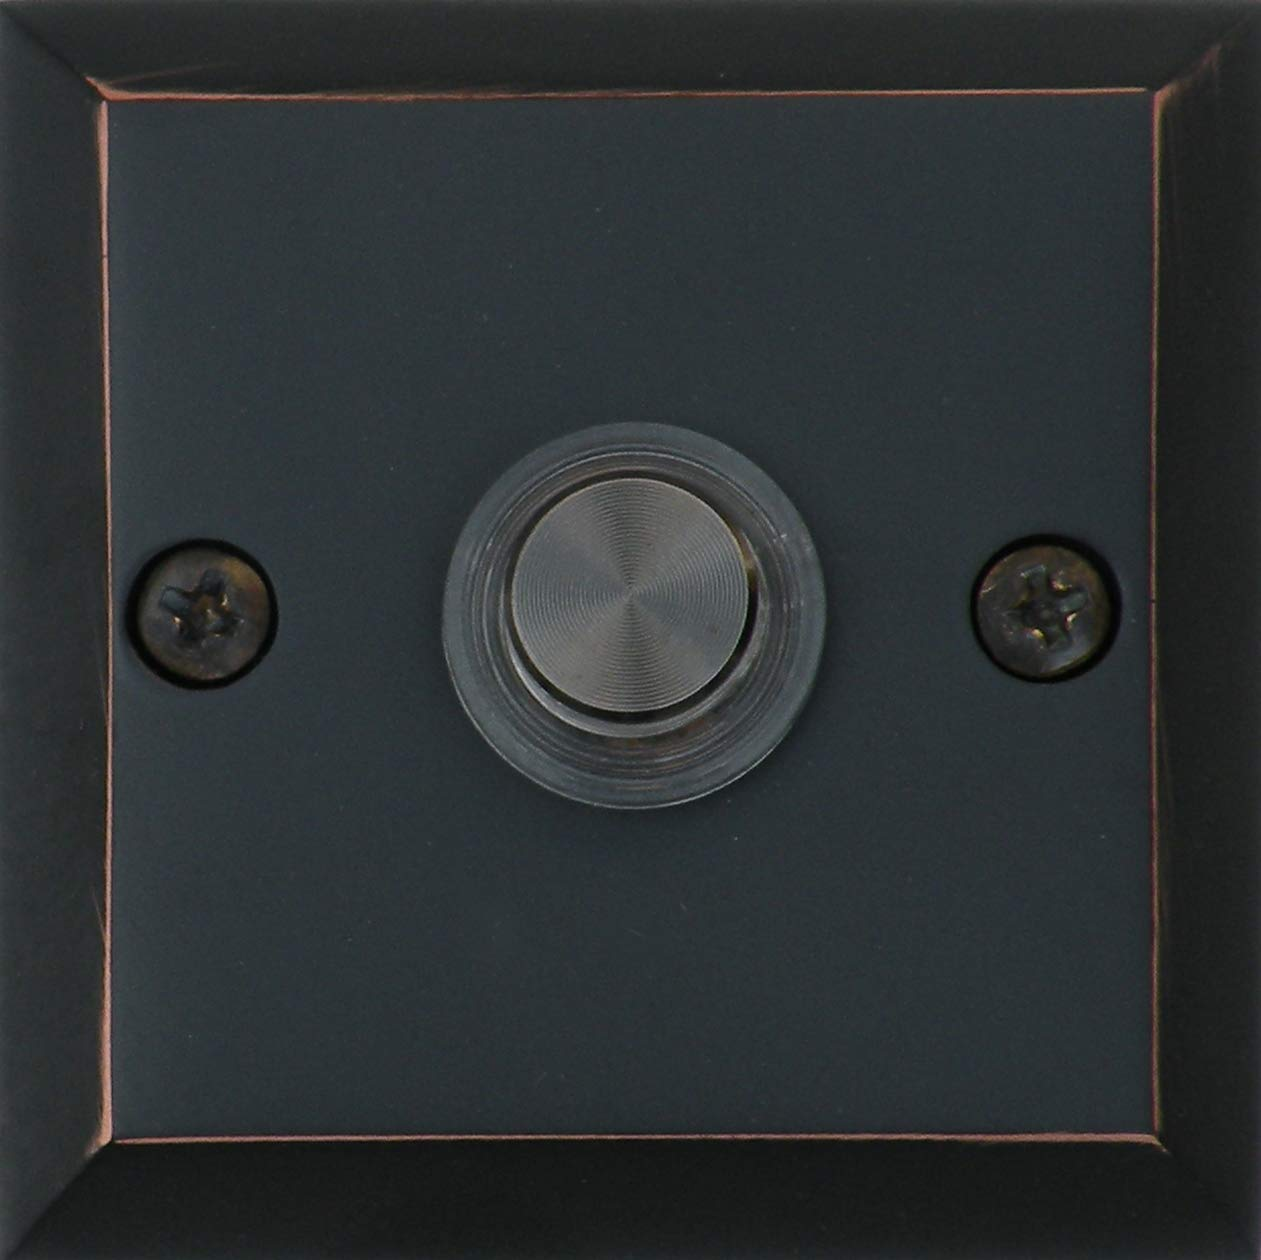 Knoxx Hardware BBP3LBXORB Oil Rubbed Bronze 2.5'' Lighted Metro Square Door Bell Button, 1-Pack